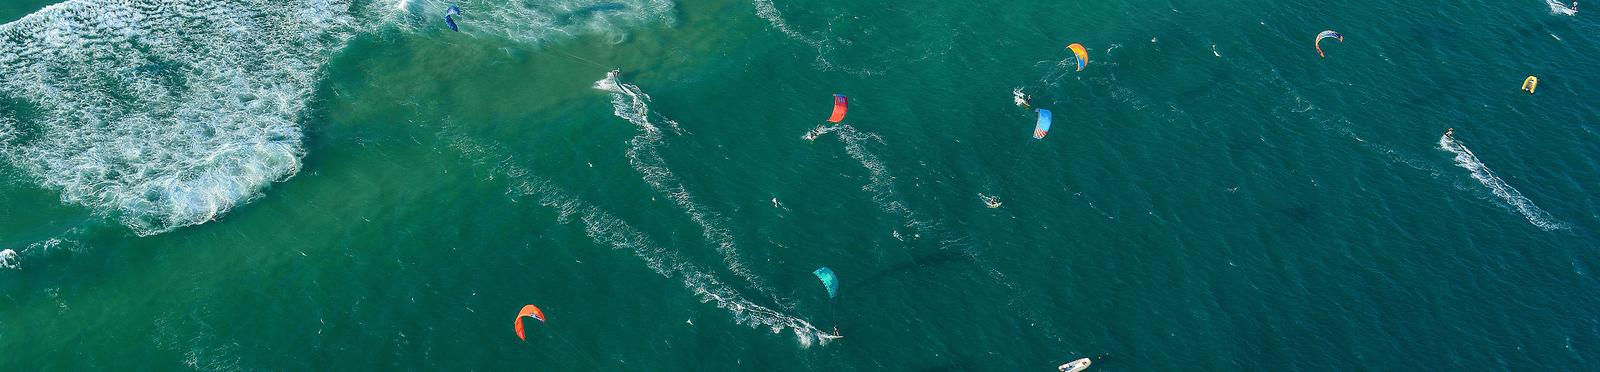 Sea with kite-surfers from the sky